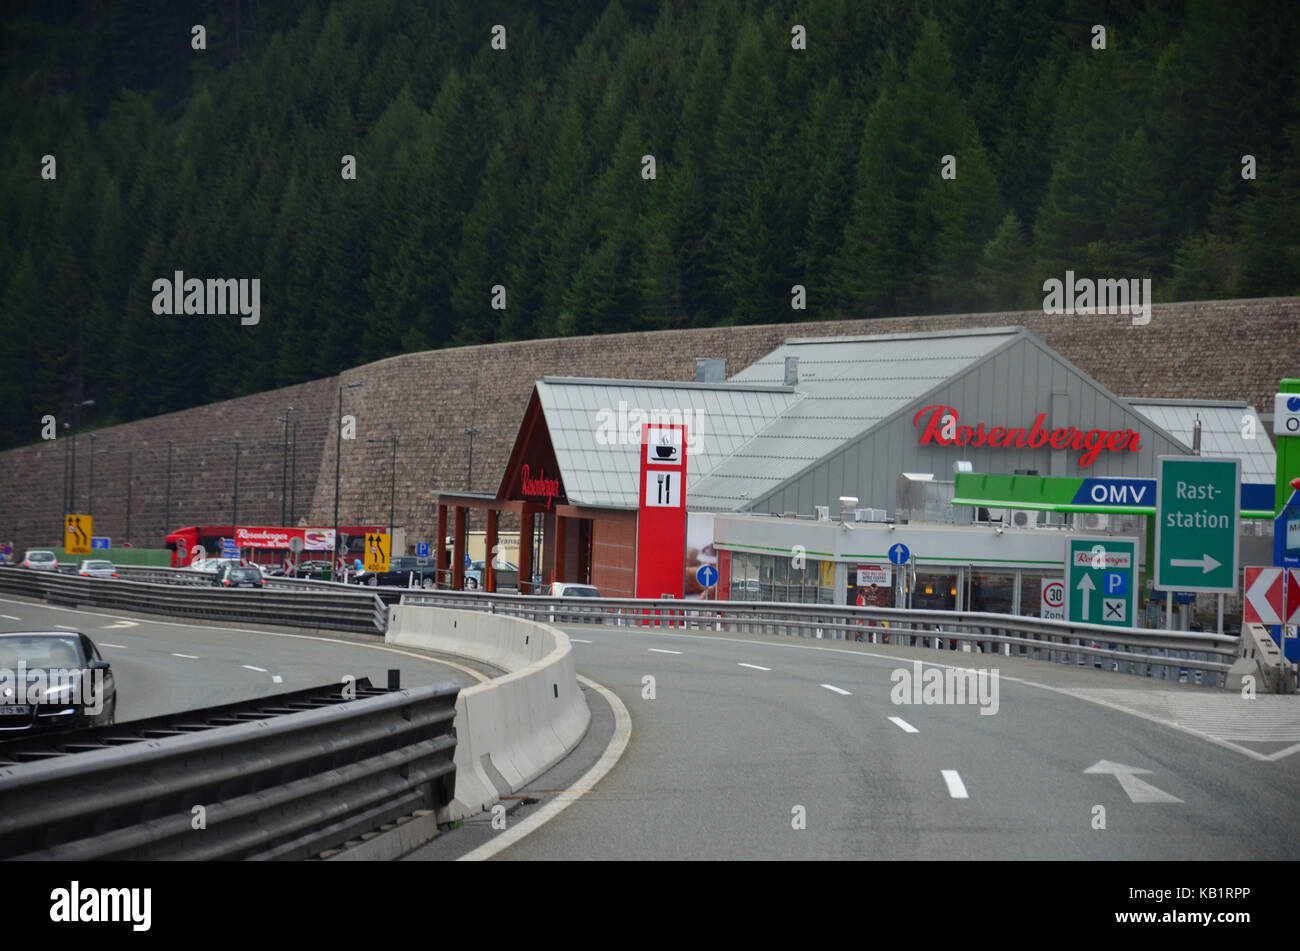 brenner pass traffic